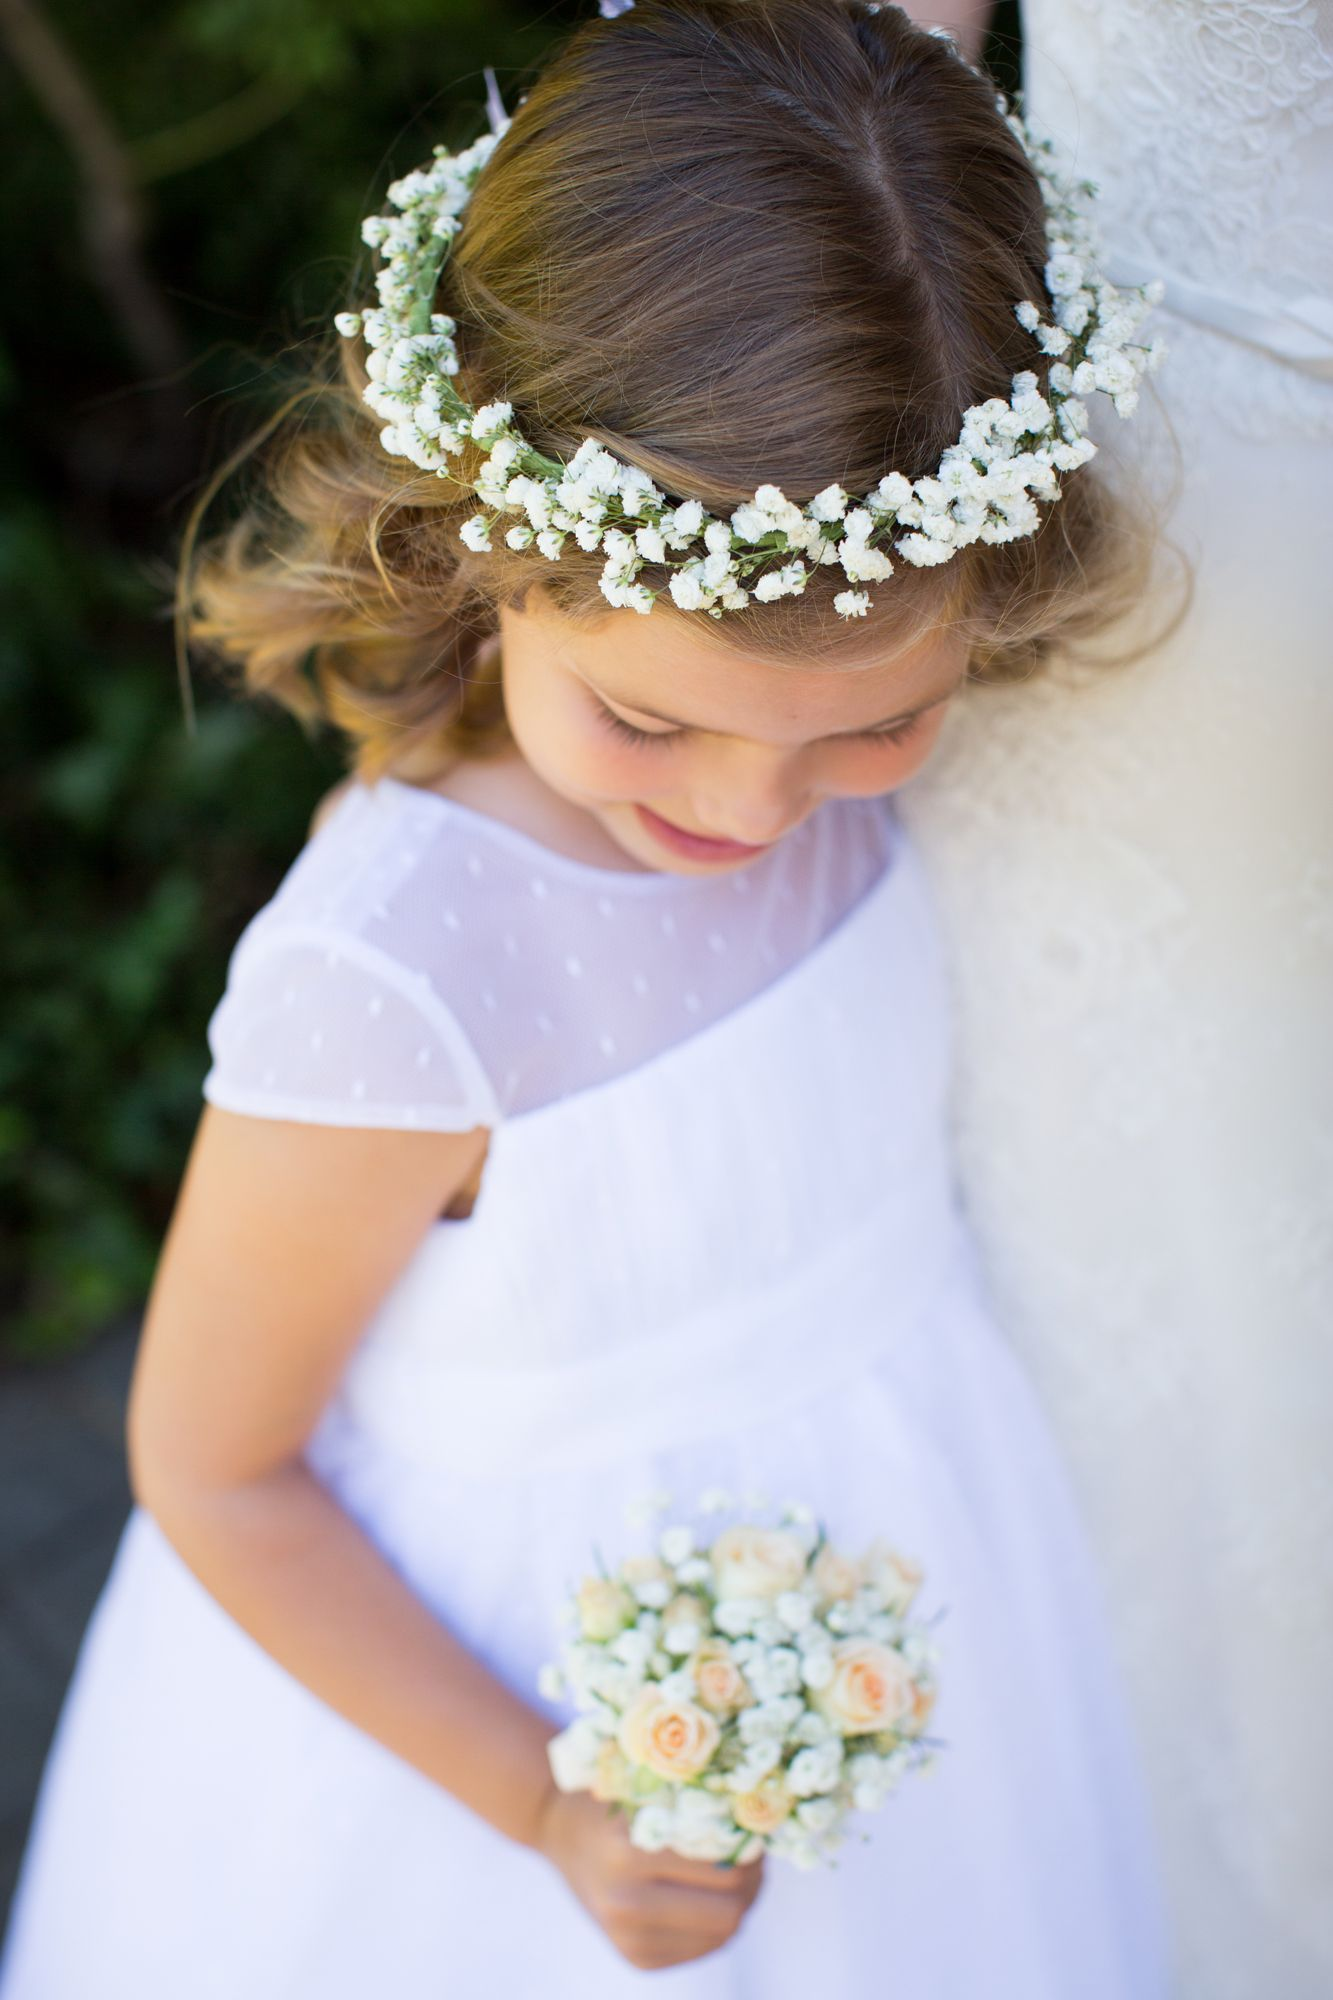 The cutest little flower girl love her babys breath flower crown the cutest little flower girl love her babys breath flower crown flowergirl izmirmasajfo Gallery